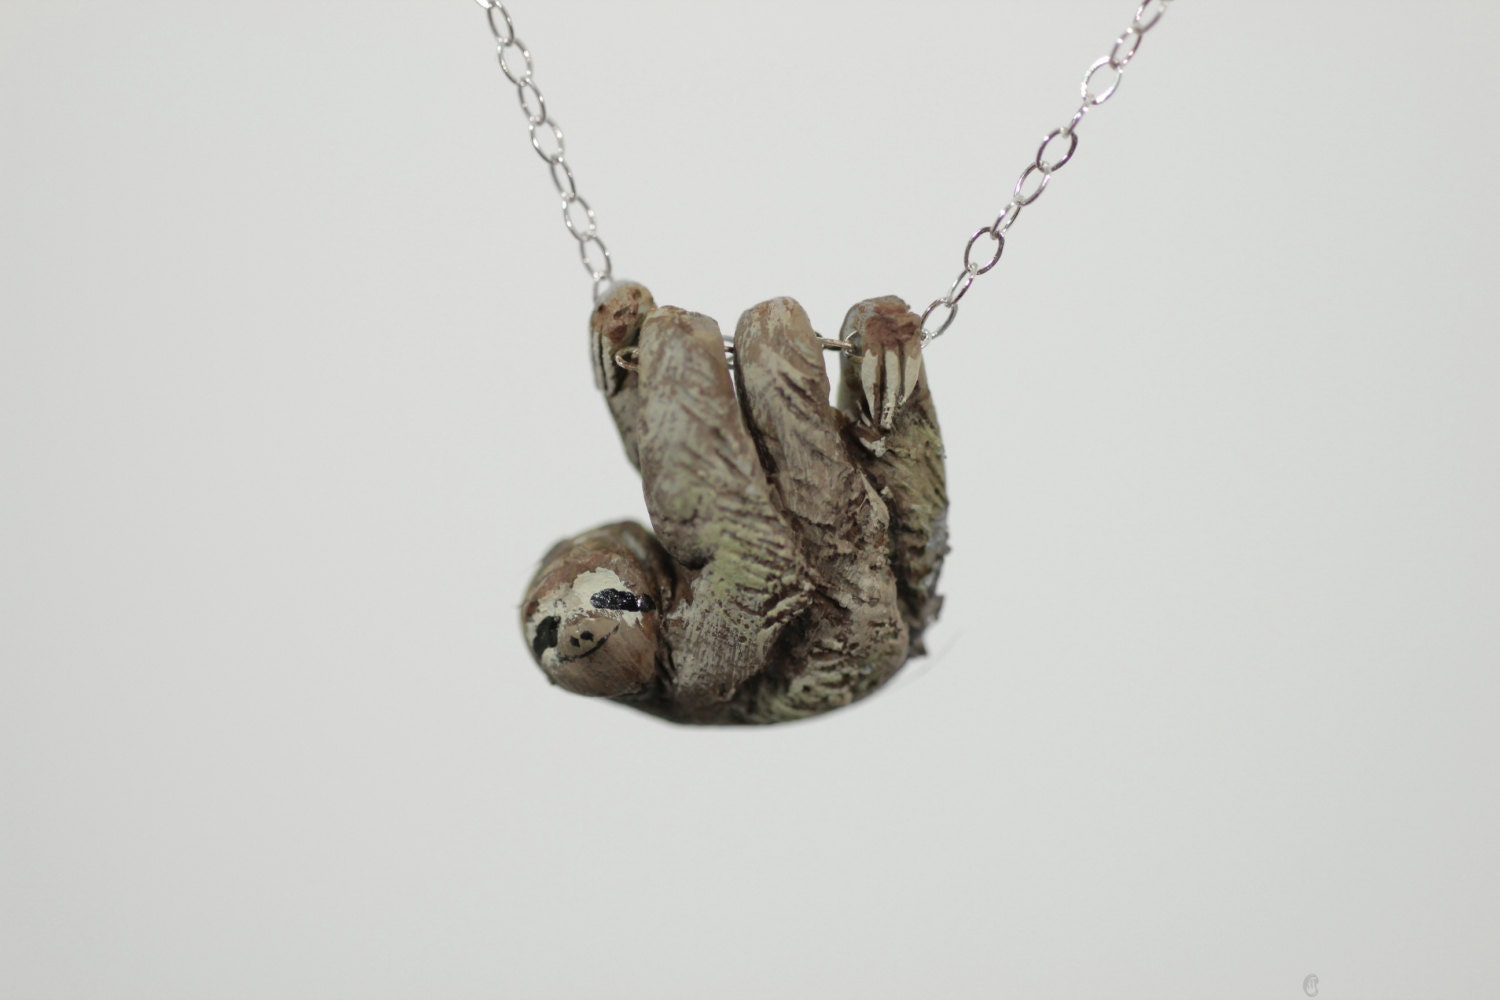 jewel pendant sloth necklace bling and happy jewelry pin accessories